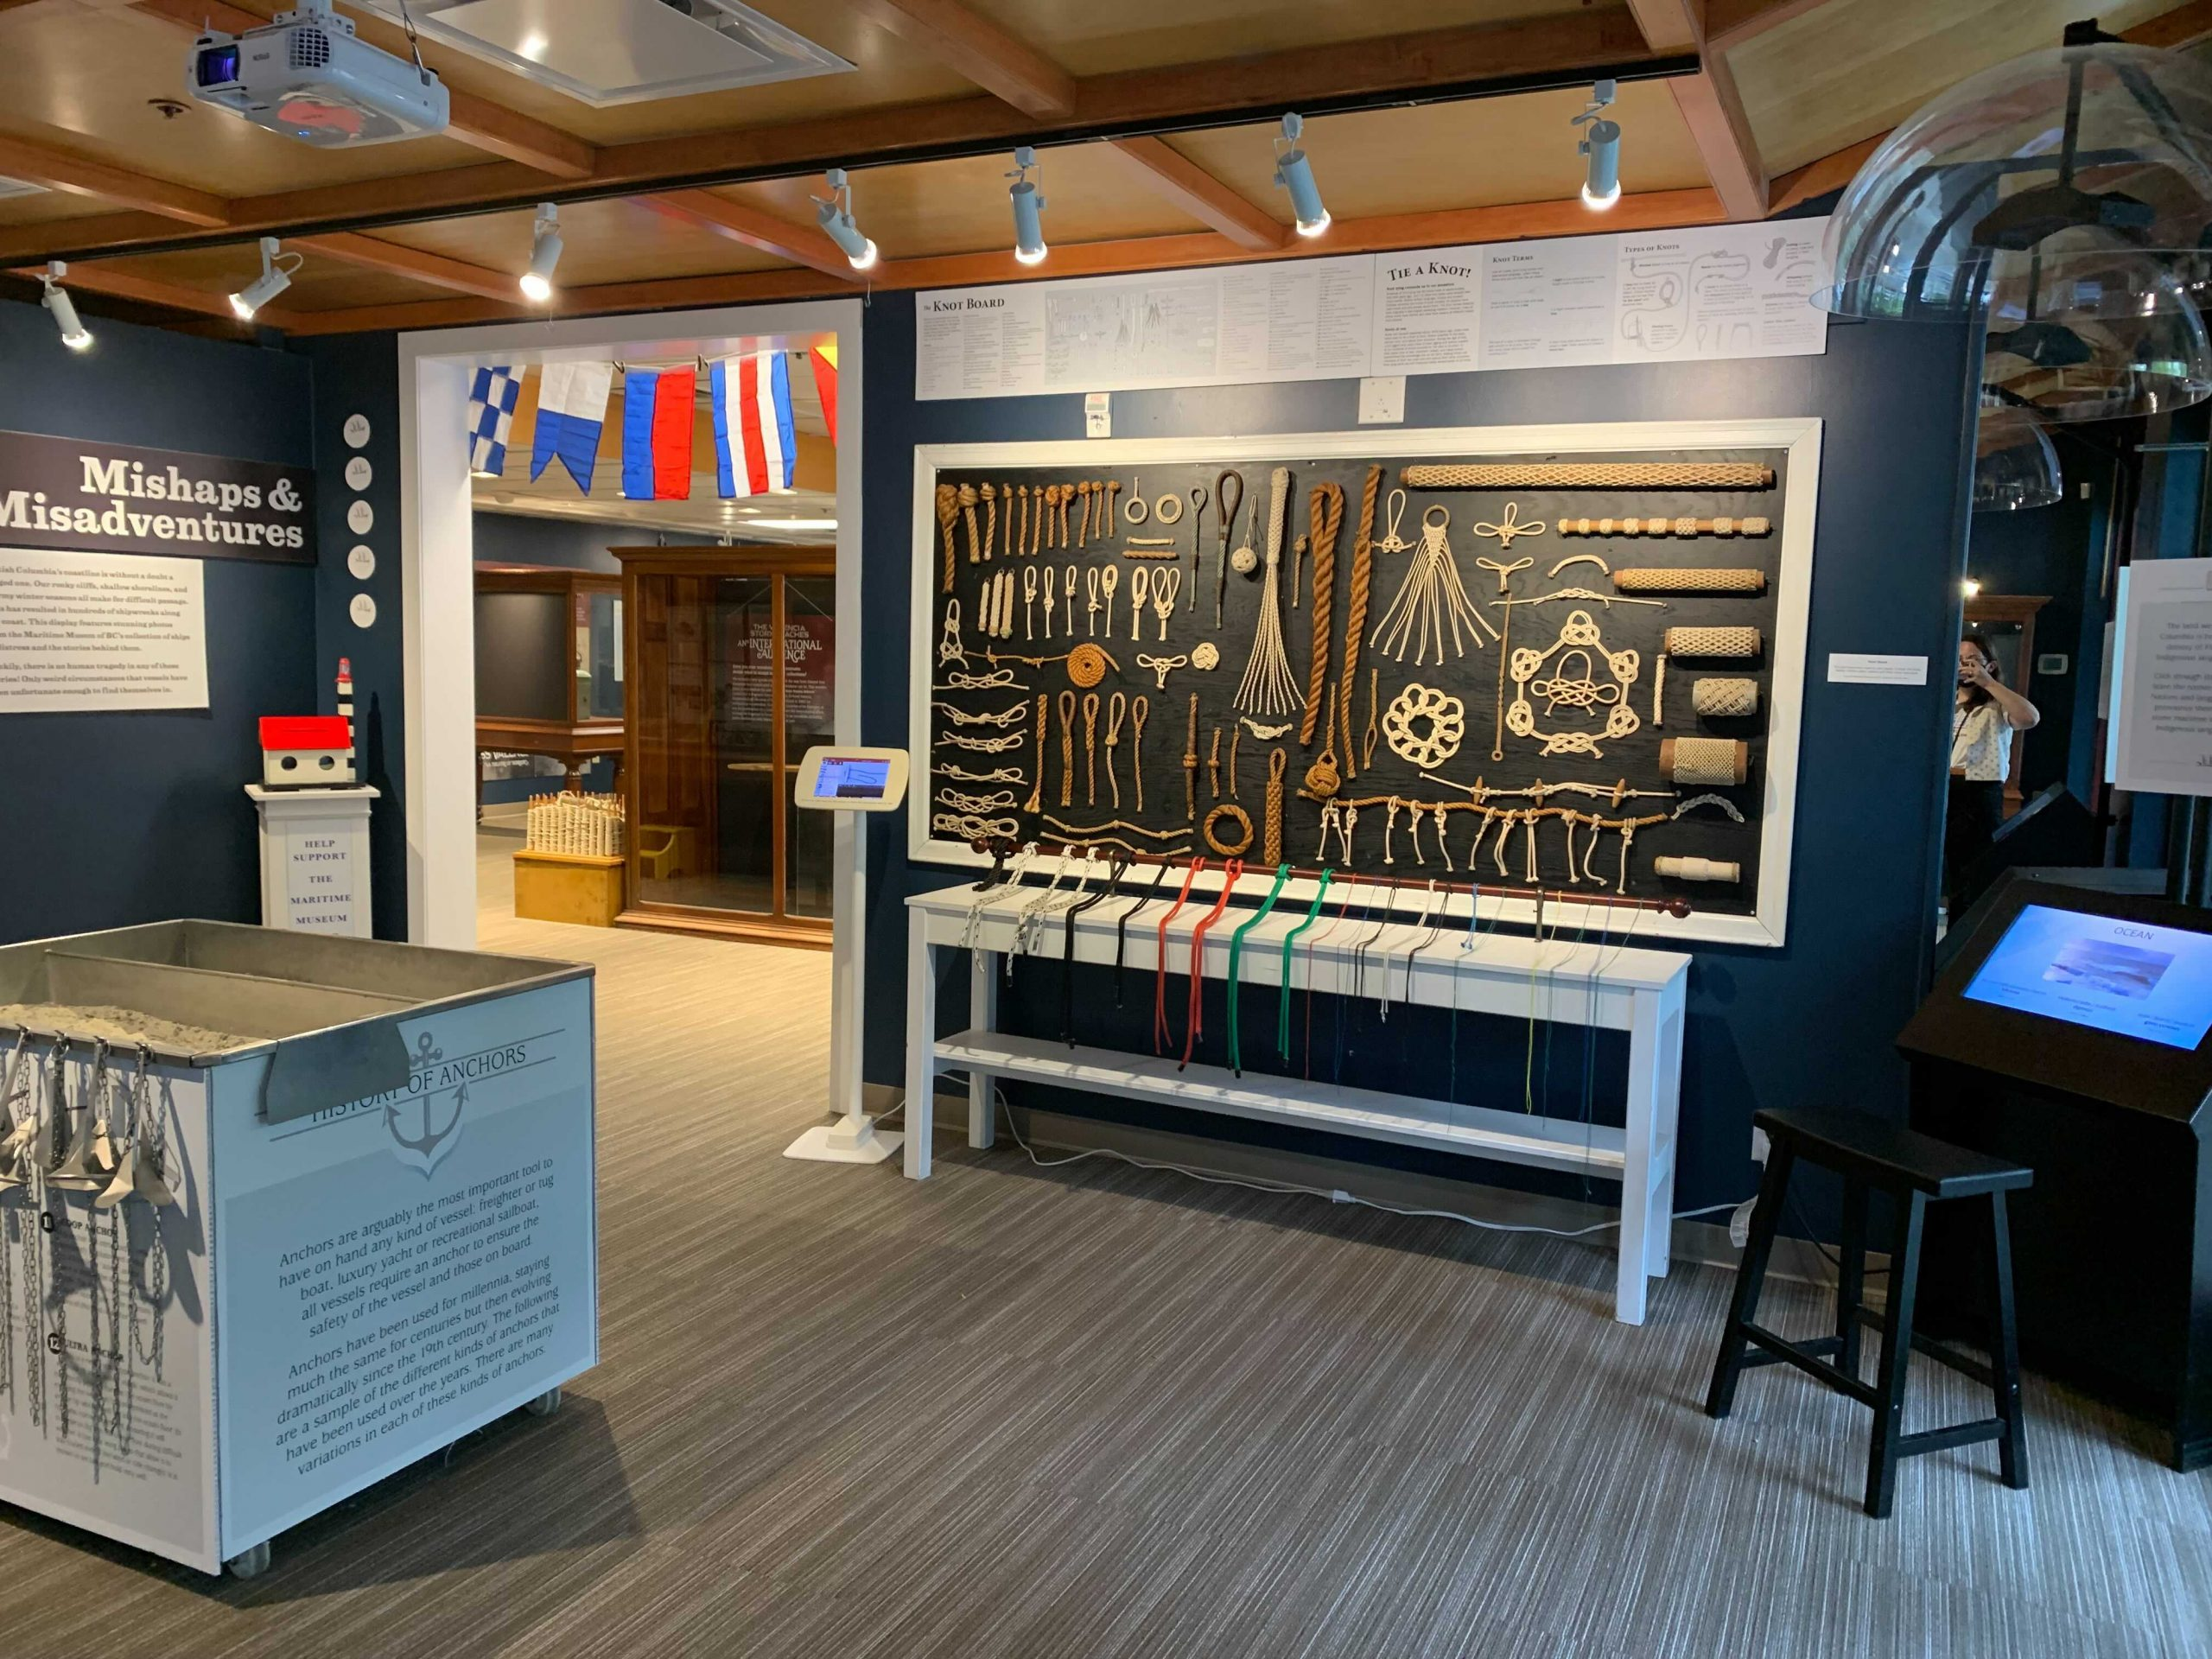 Interior gallery of the Maritime Museum of BC